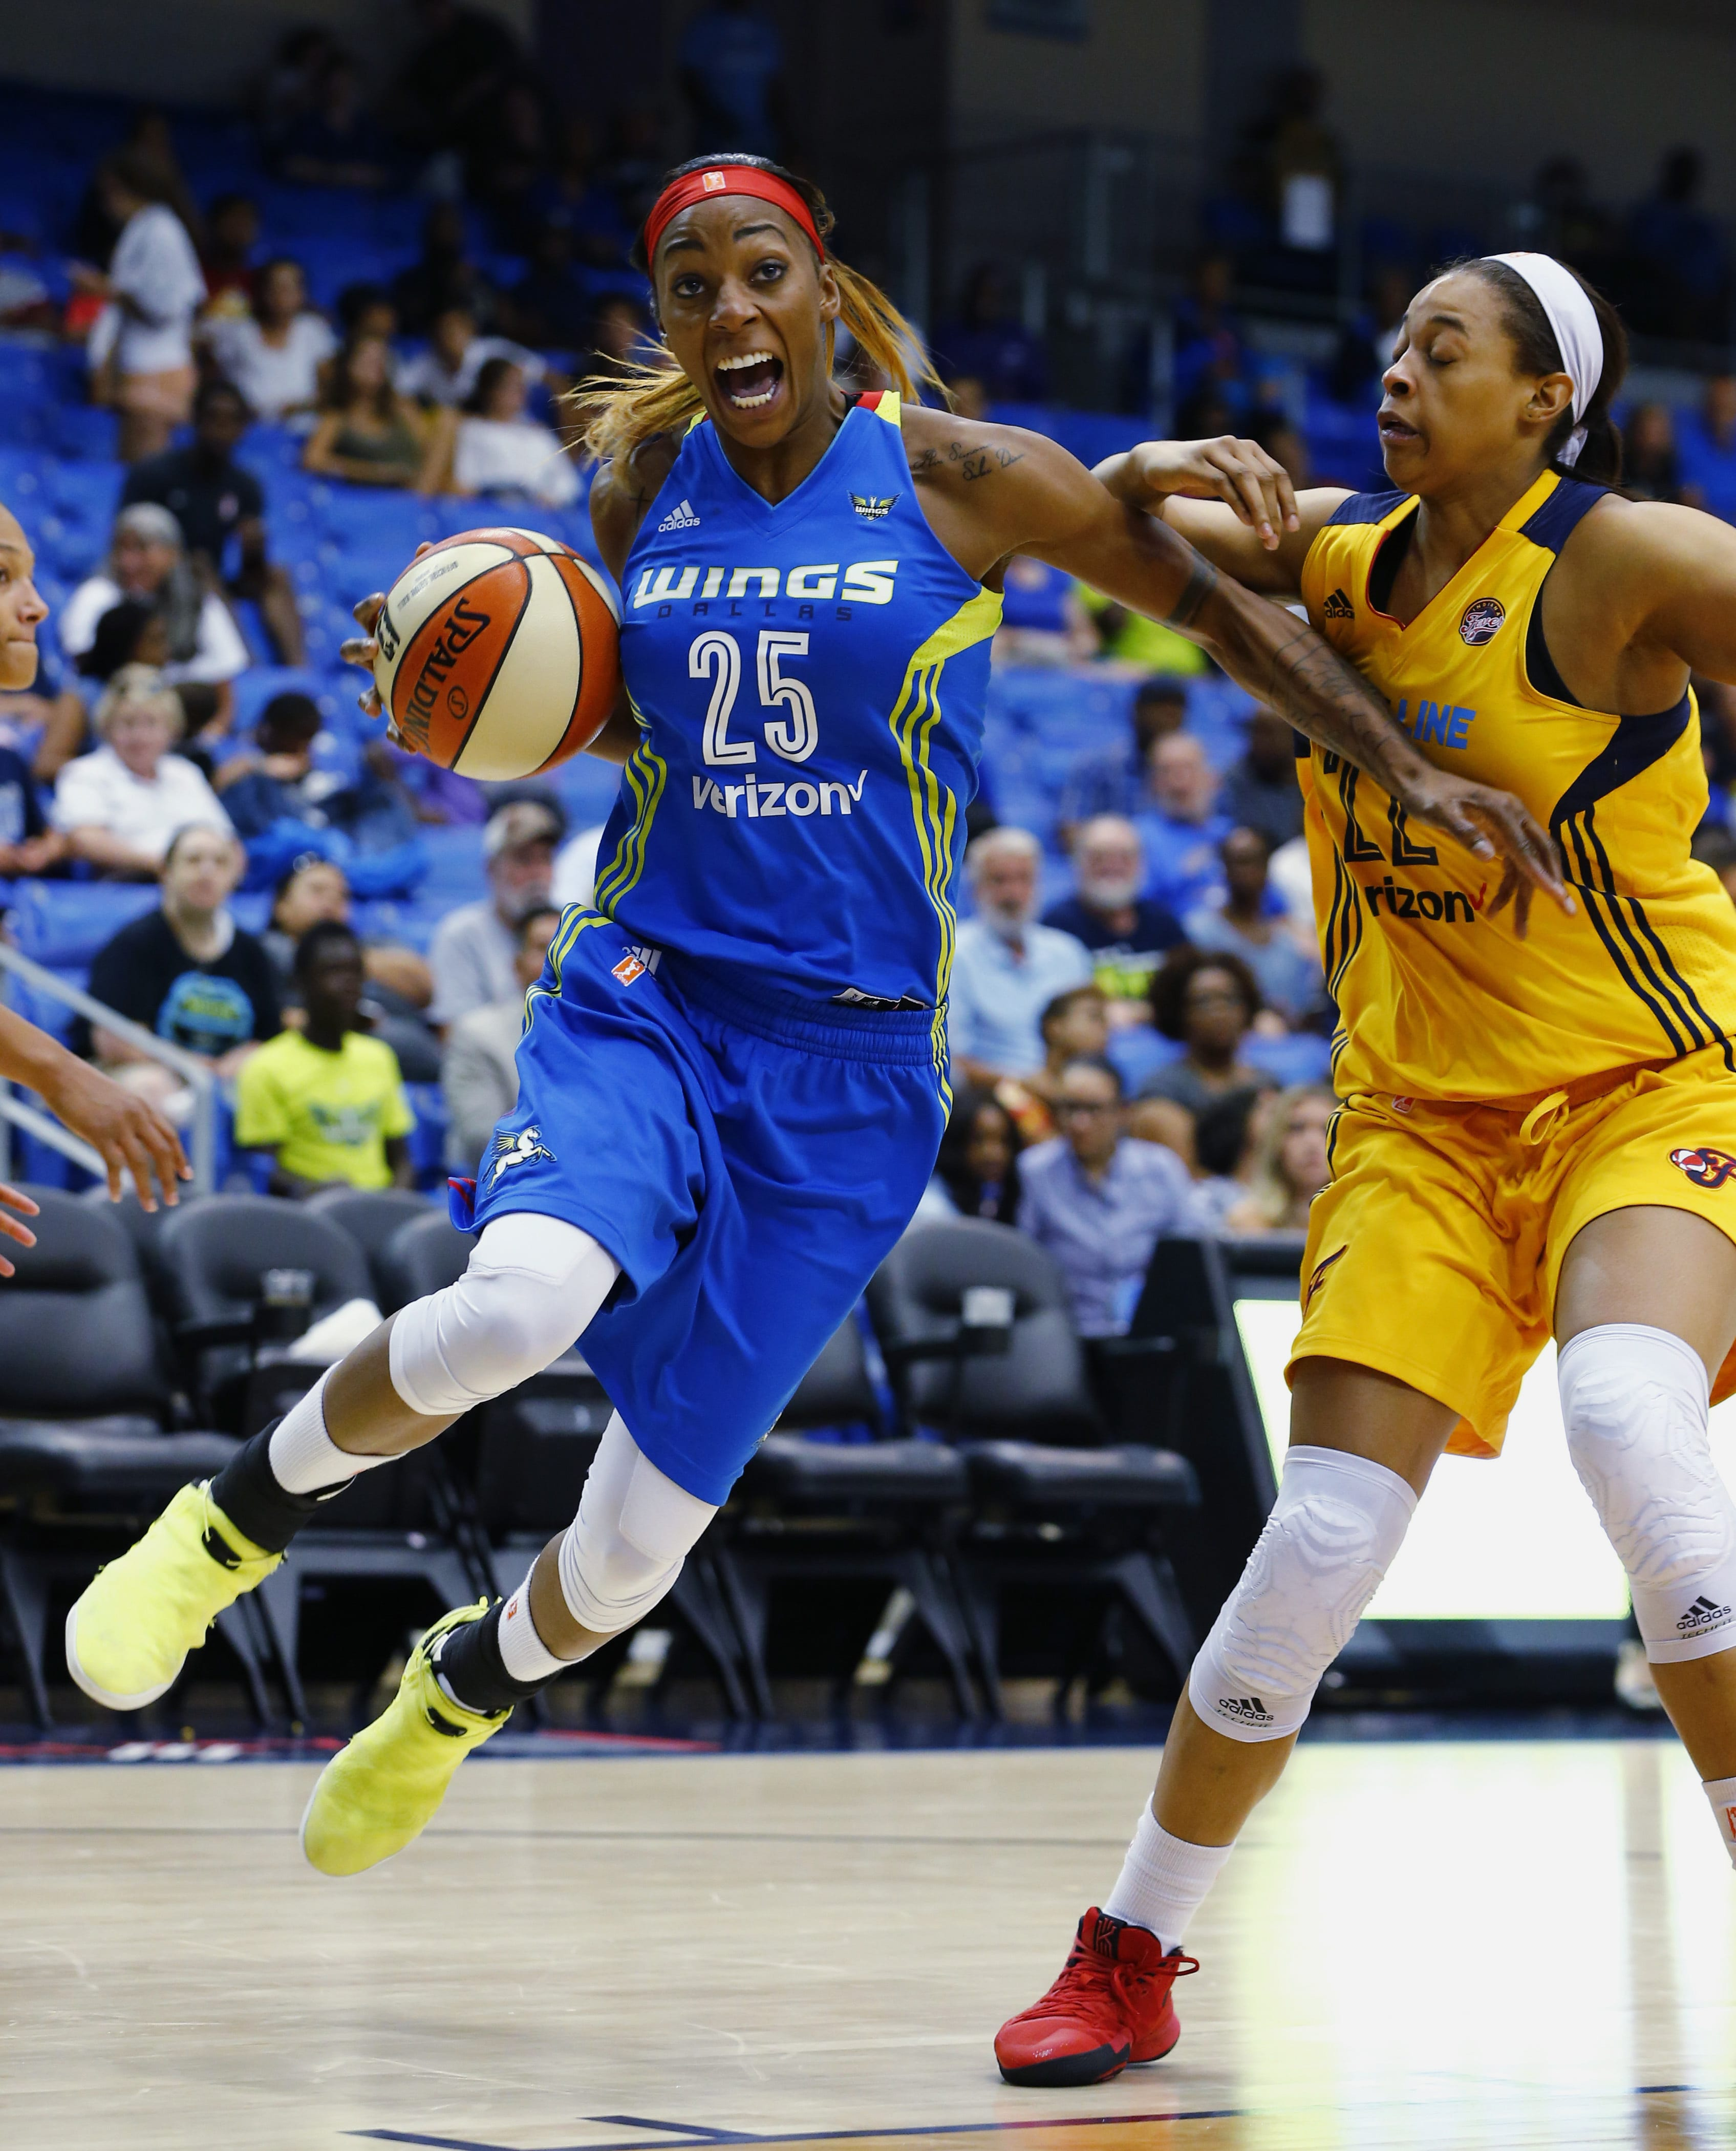 Dallas Wings announce 2018 schedule